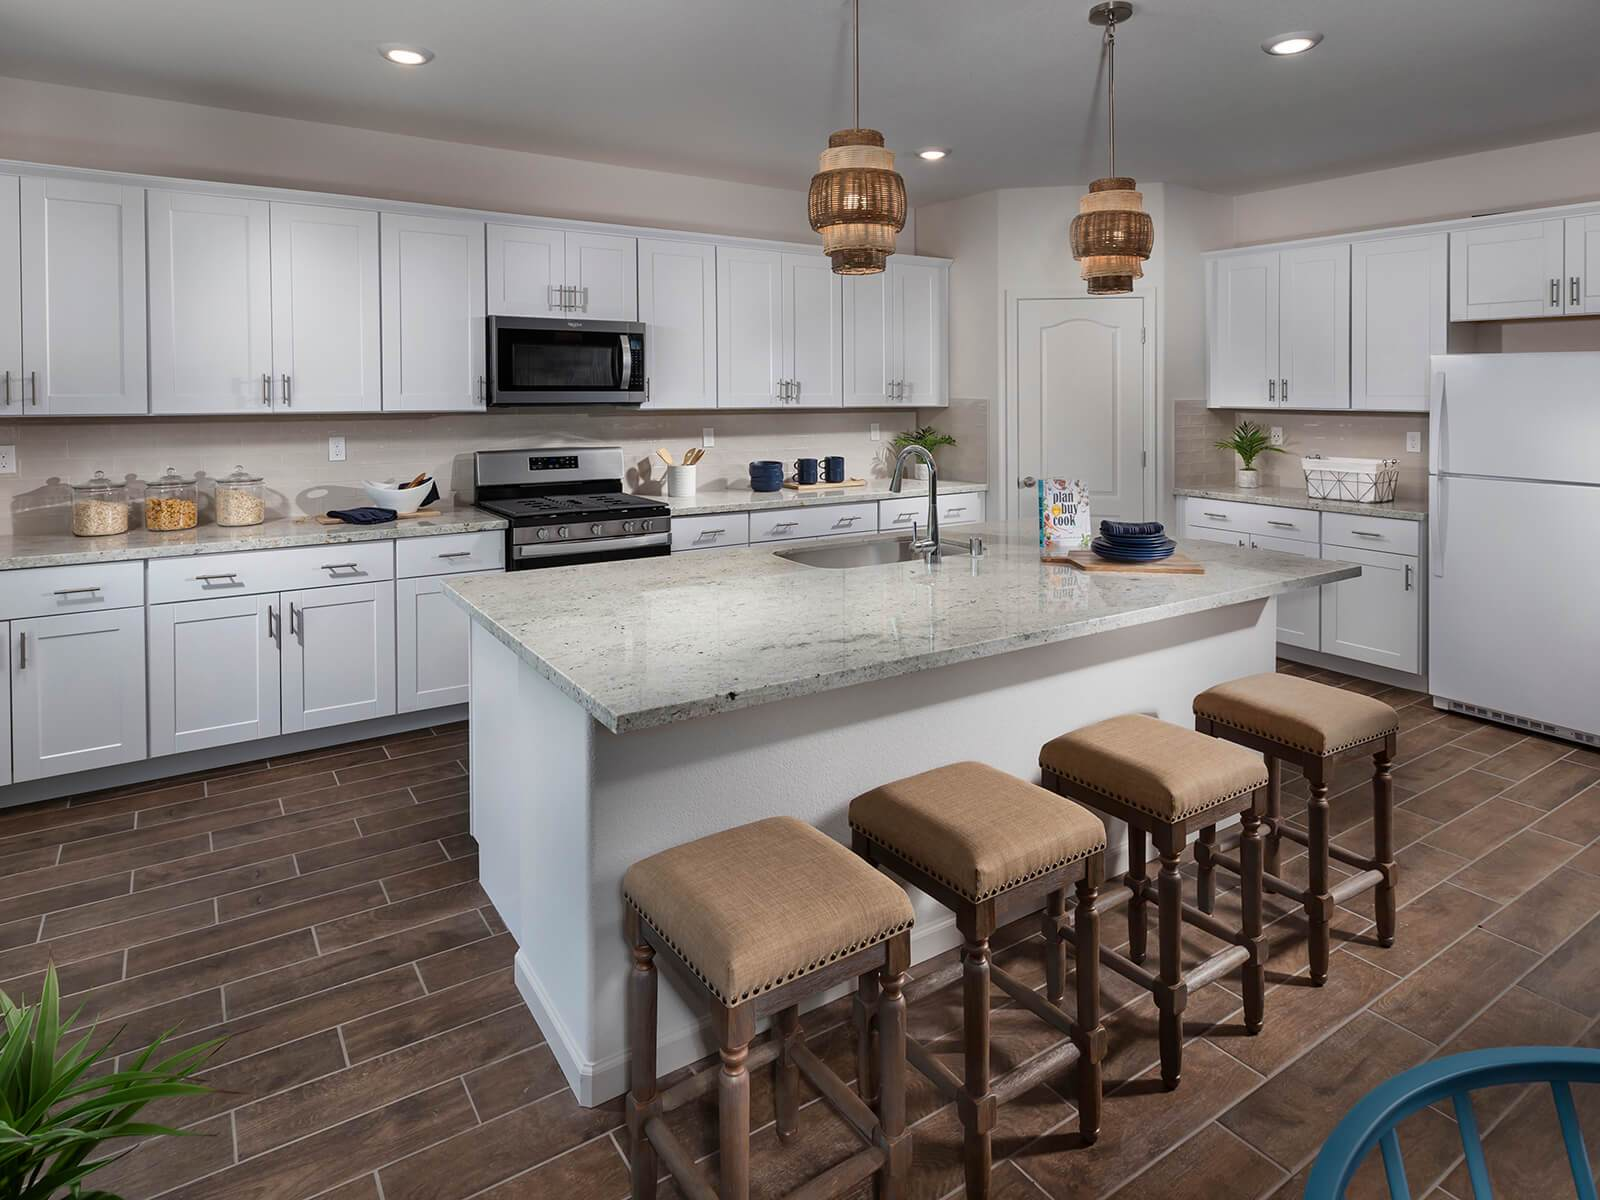 Kitchen featured in the Residence 5 By Meritage Homes in Stockton-Lodi, CA